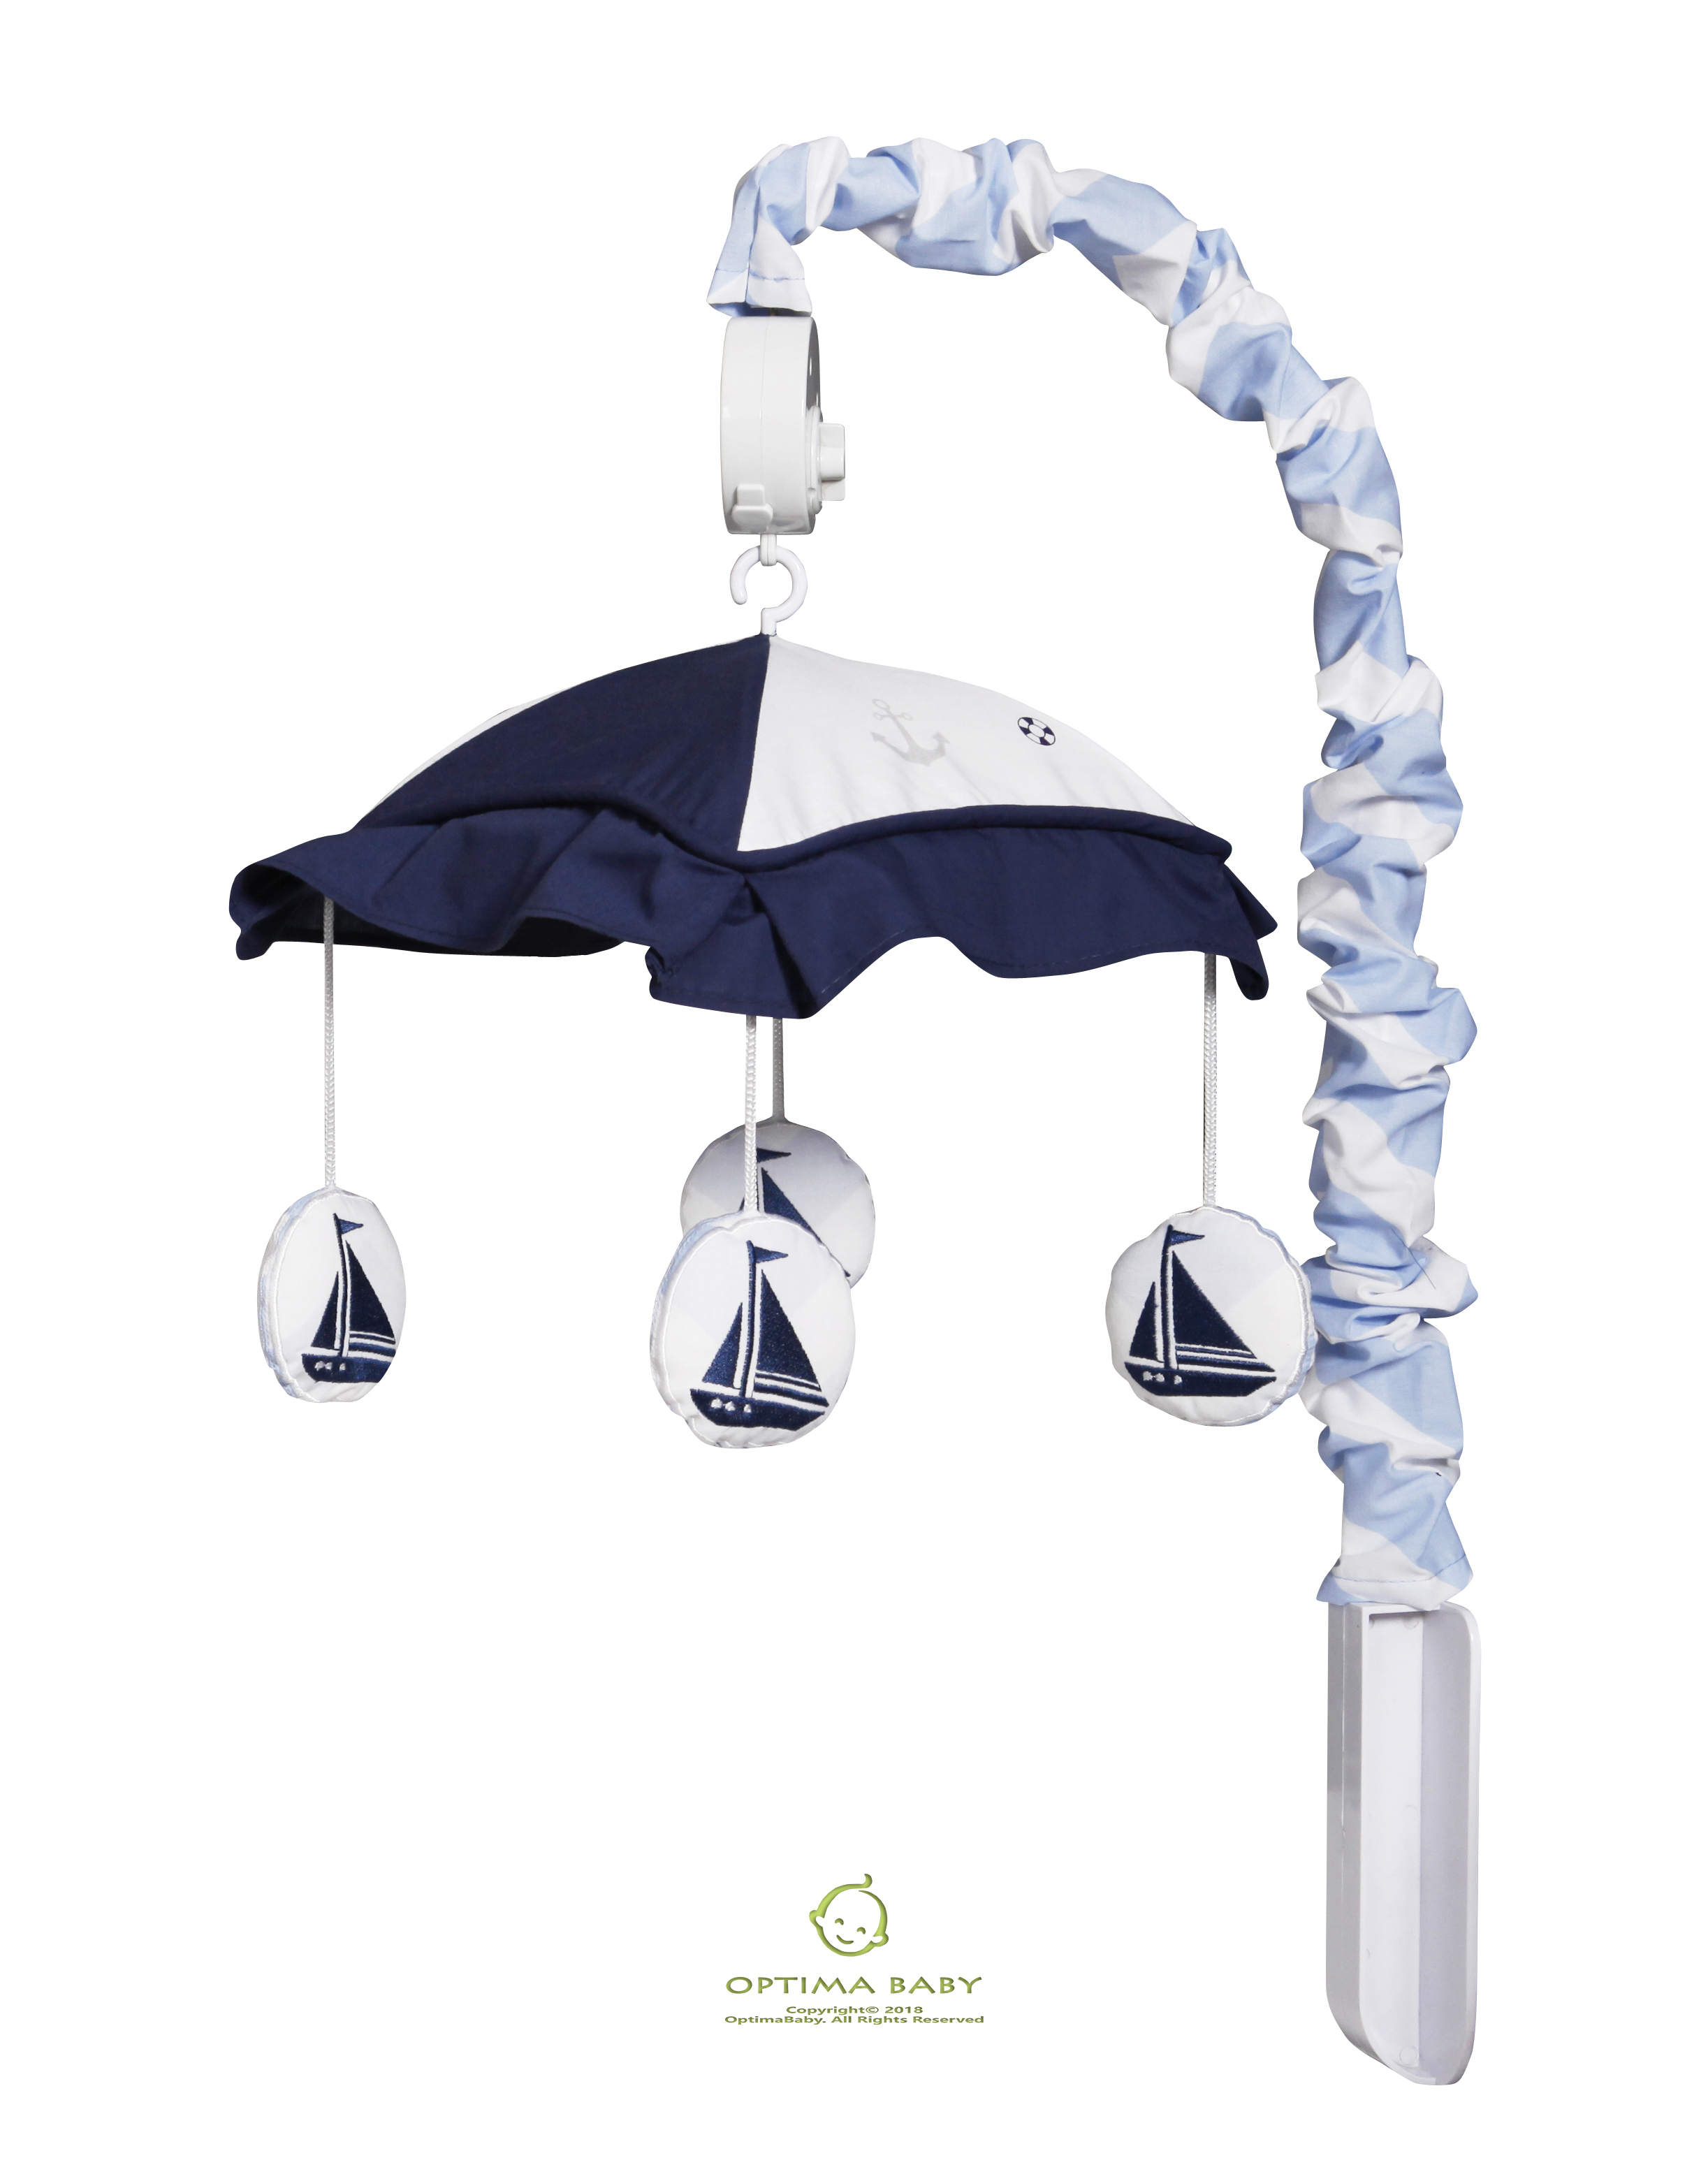 Click here to buy OptimaBaby Nautical Explorer Sailor Musical Mobile by OptimaBaby.